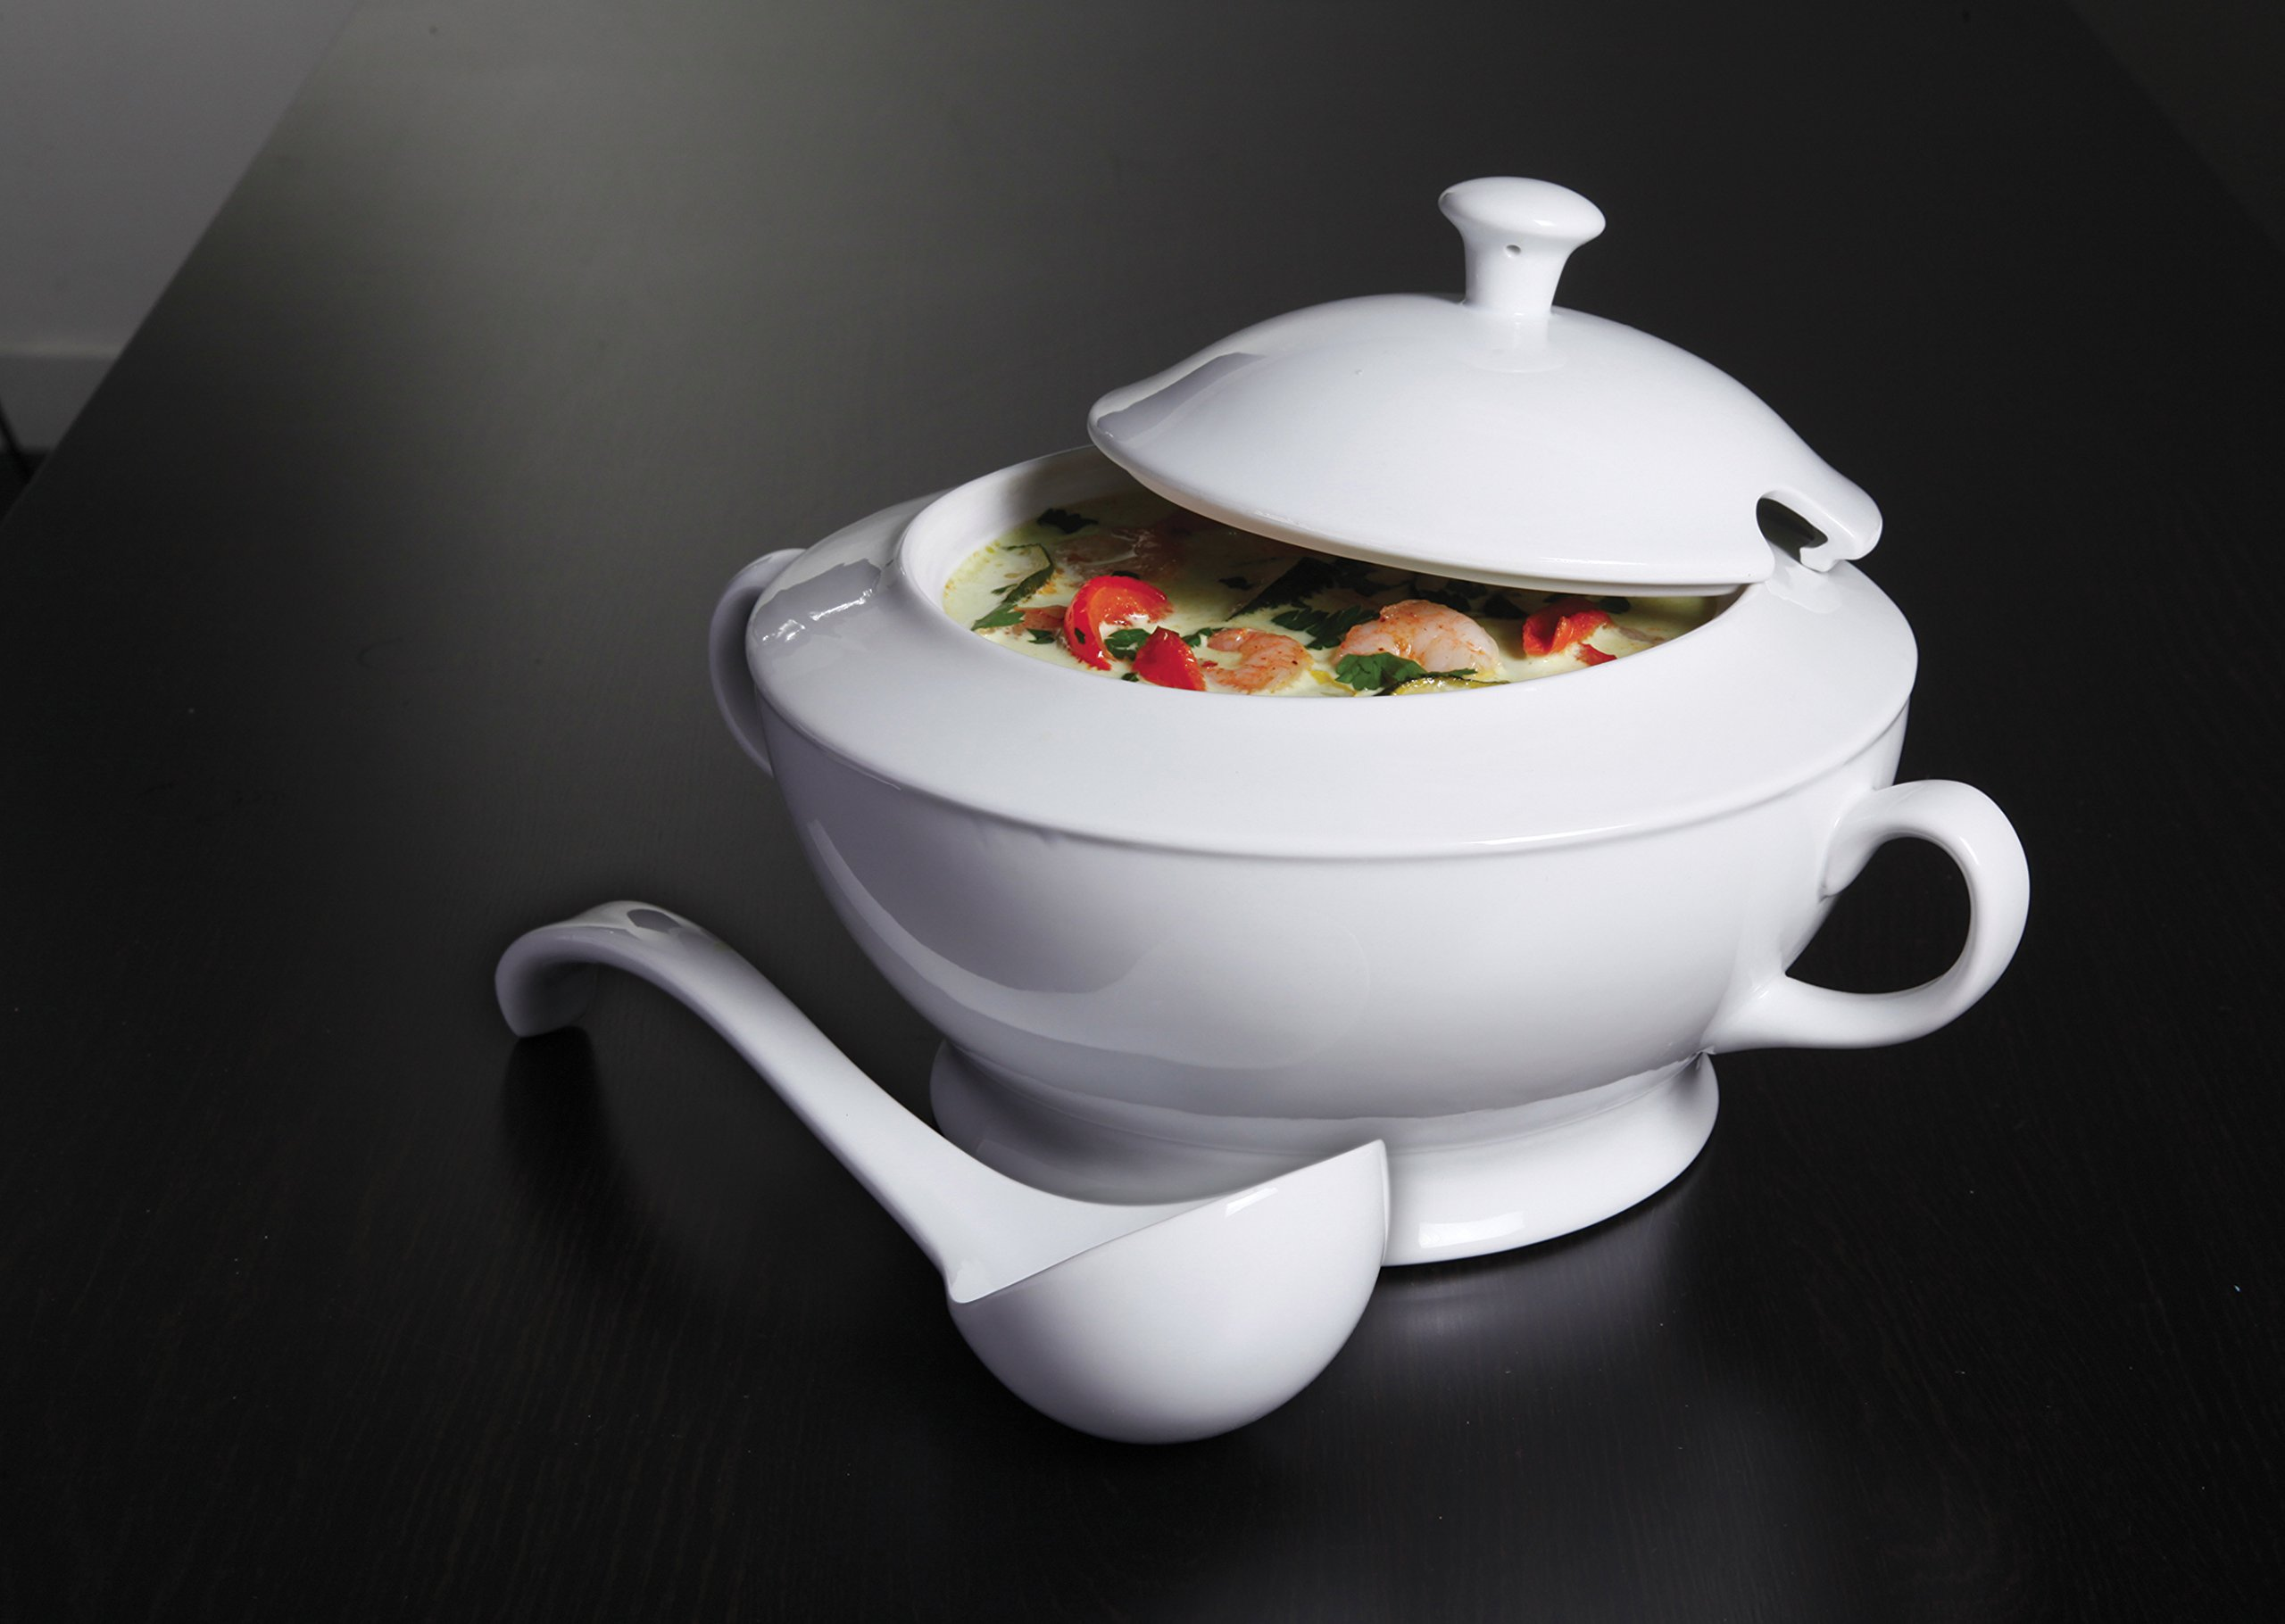 Gibson Elite 101986.03RM Gracious Dining Soup Tureen with Ladle Ware, 12.75'', White